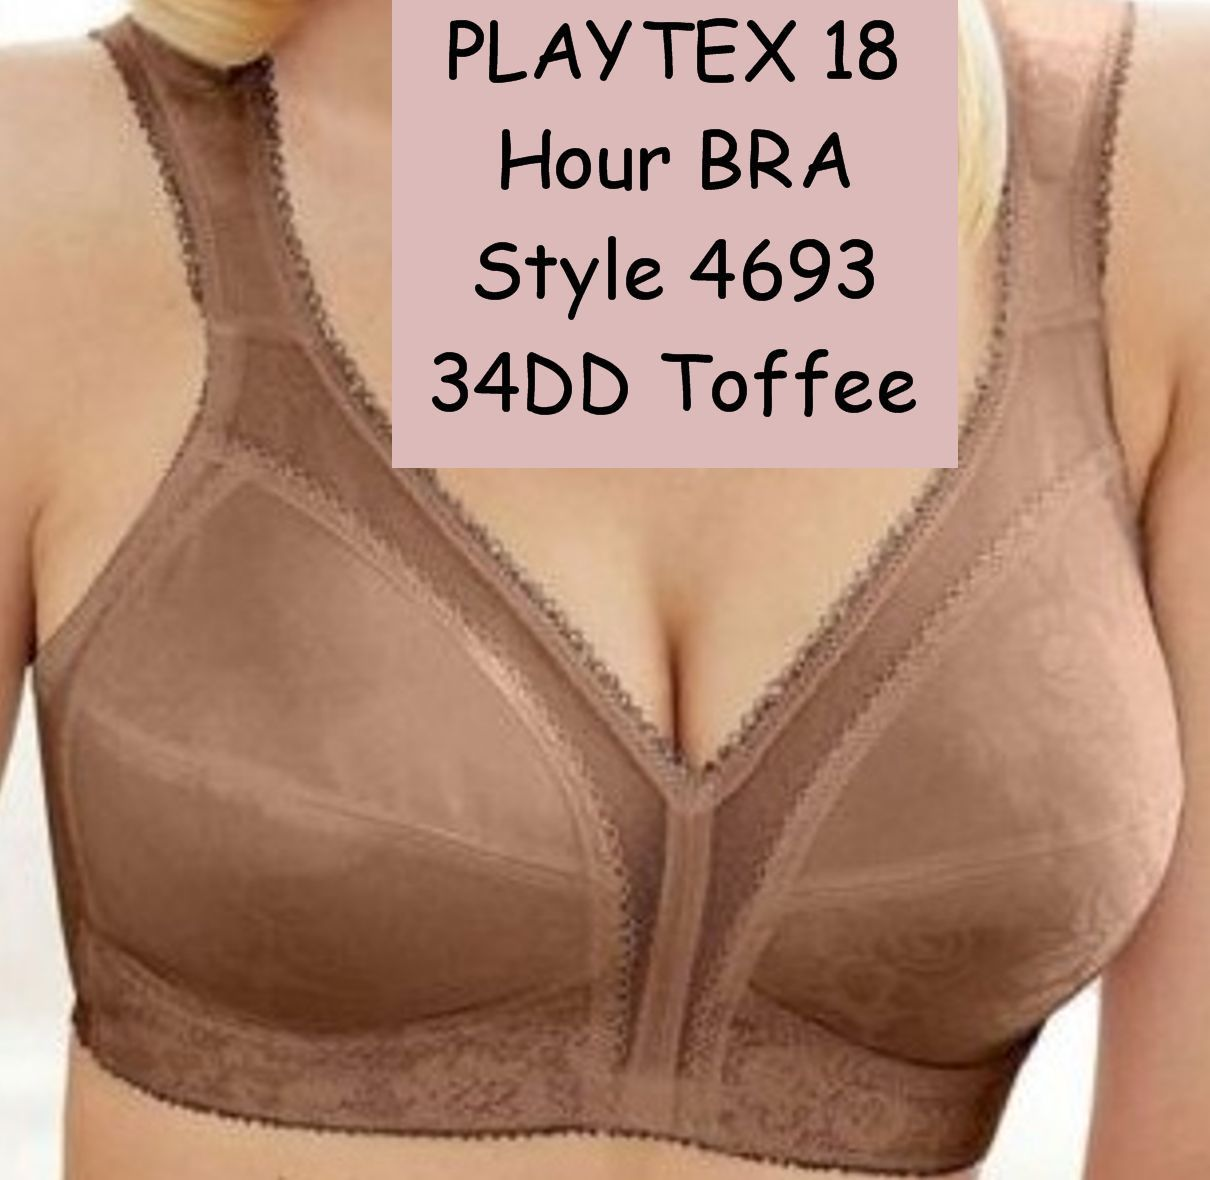 Playtex 18 Hour Bra Style 4693 Size 34DD Toffee Color